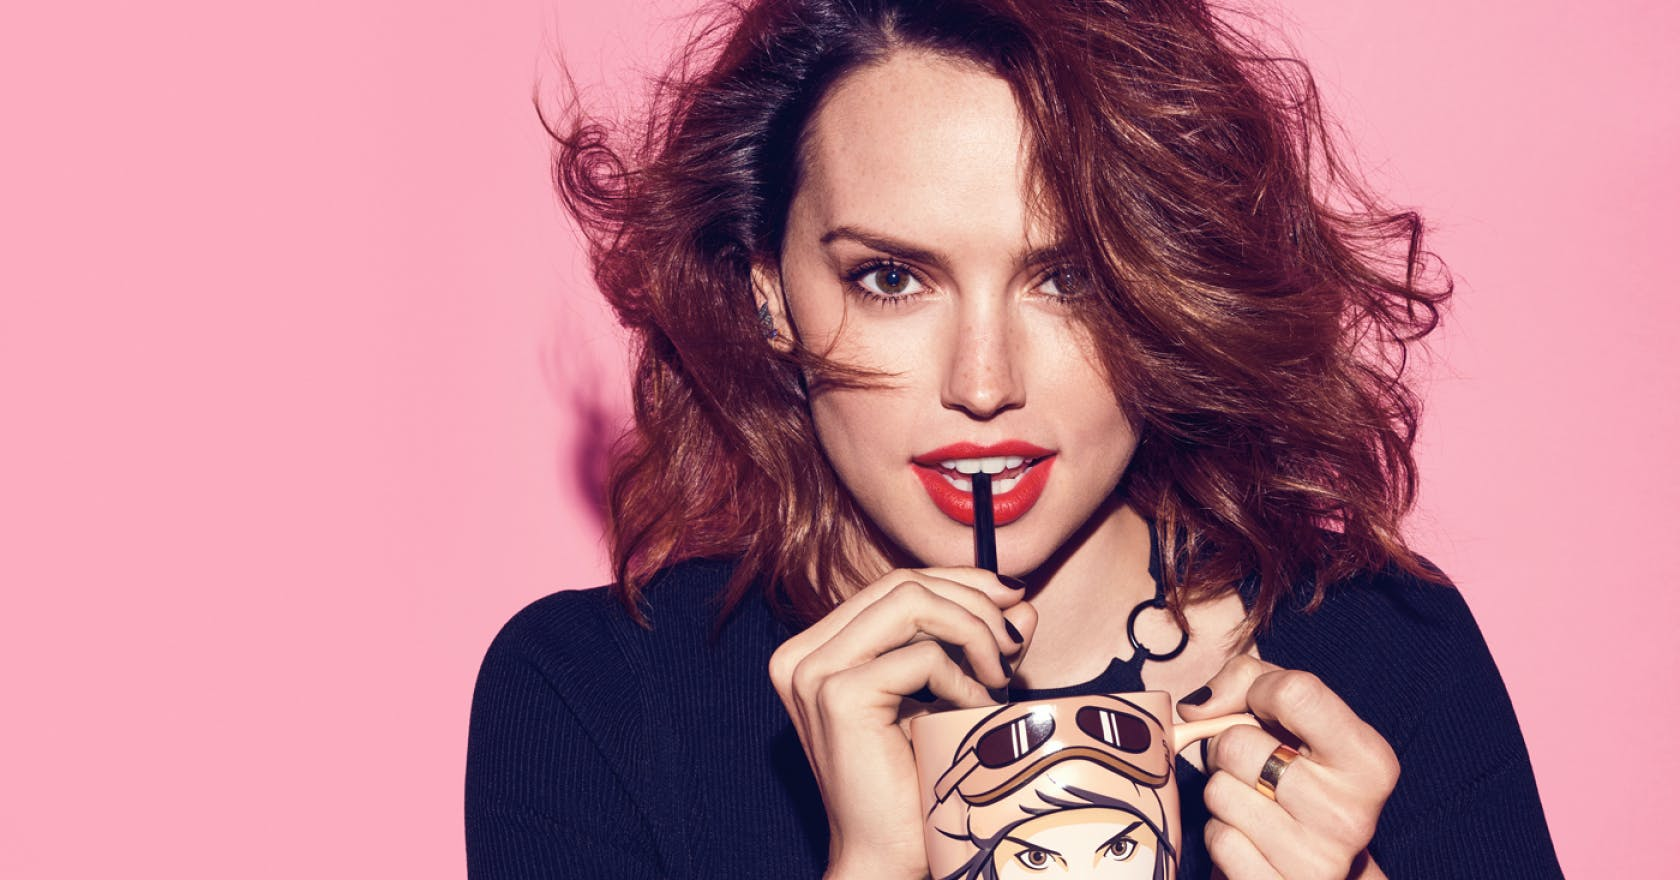 Daisy Ridley On Finding Fame Star Wars And Her Love For